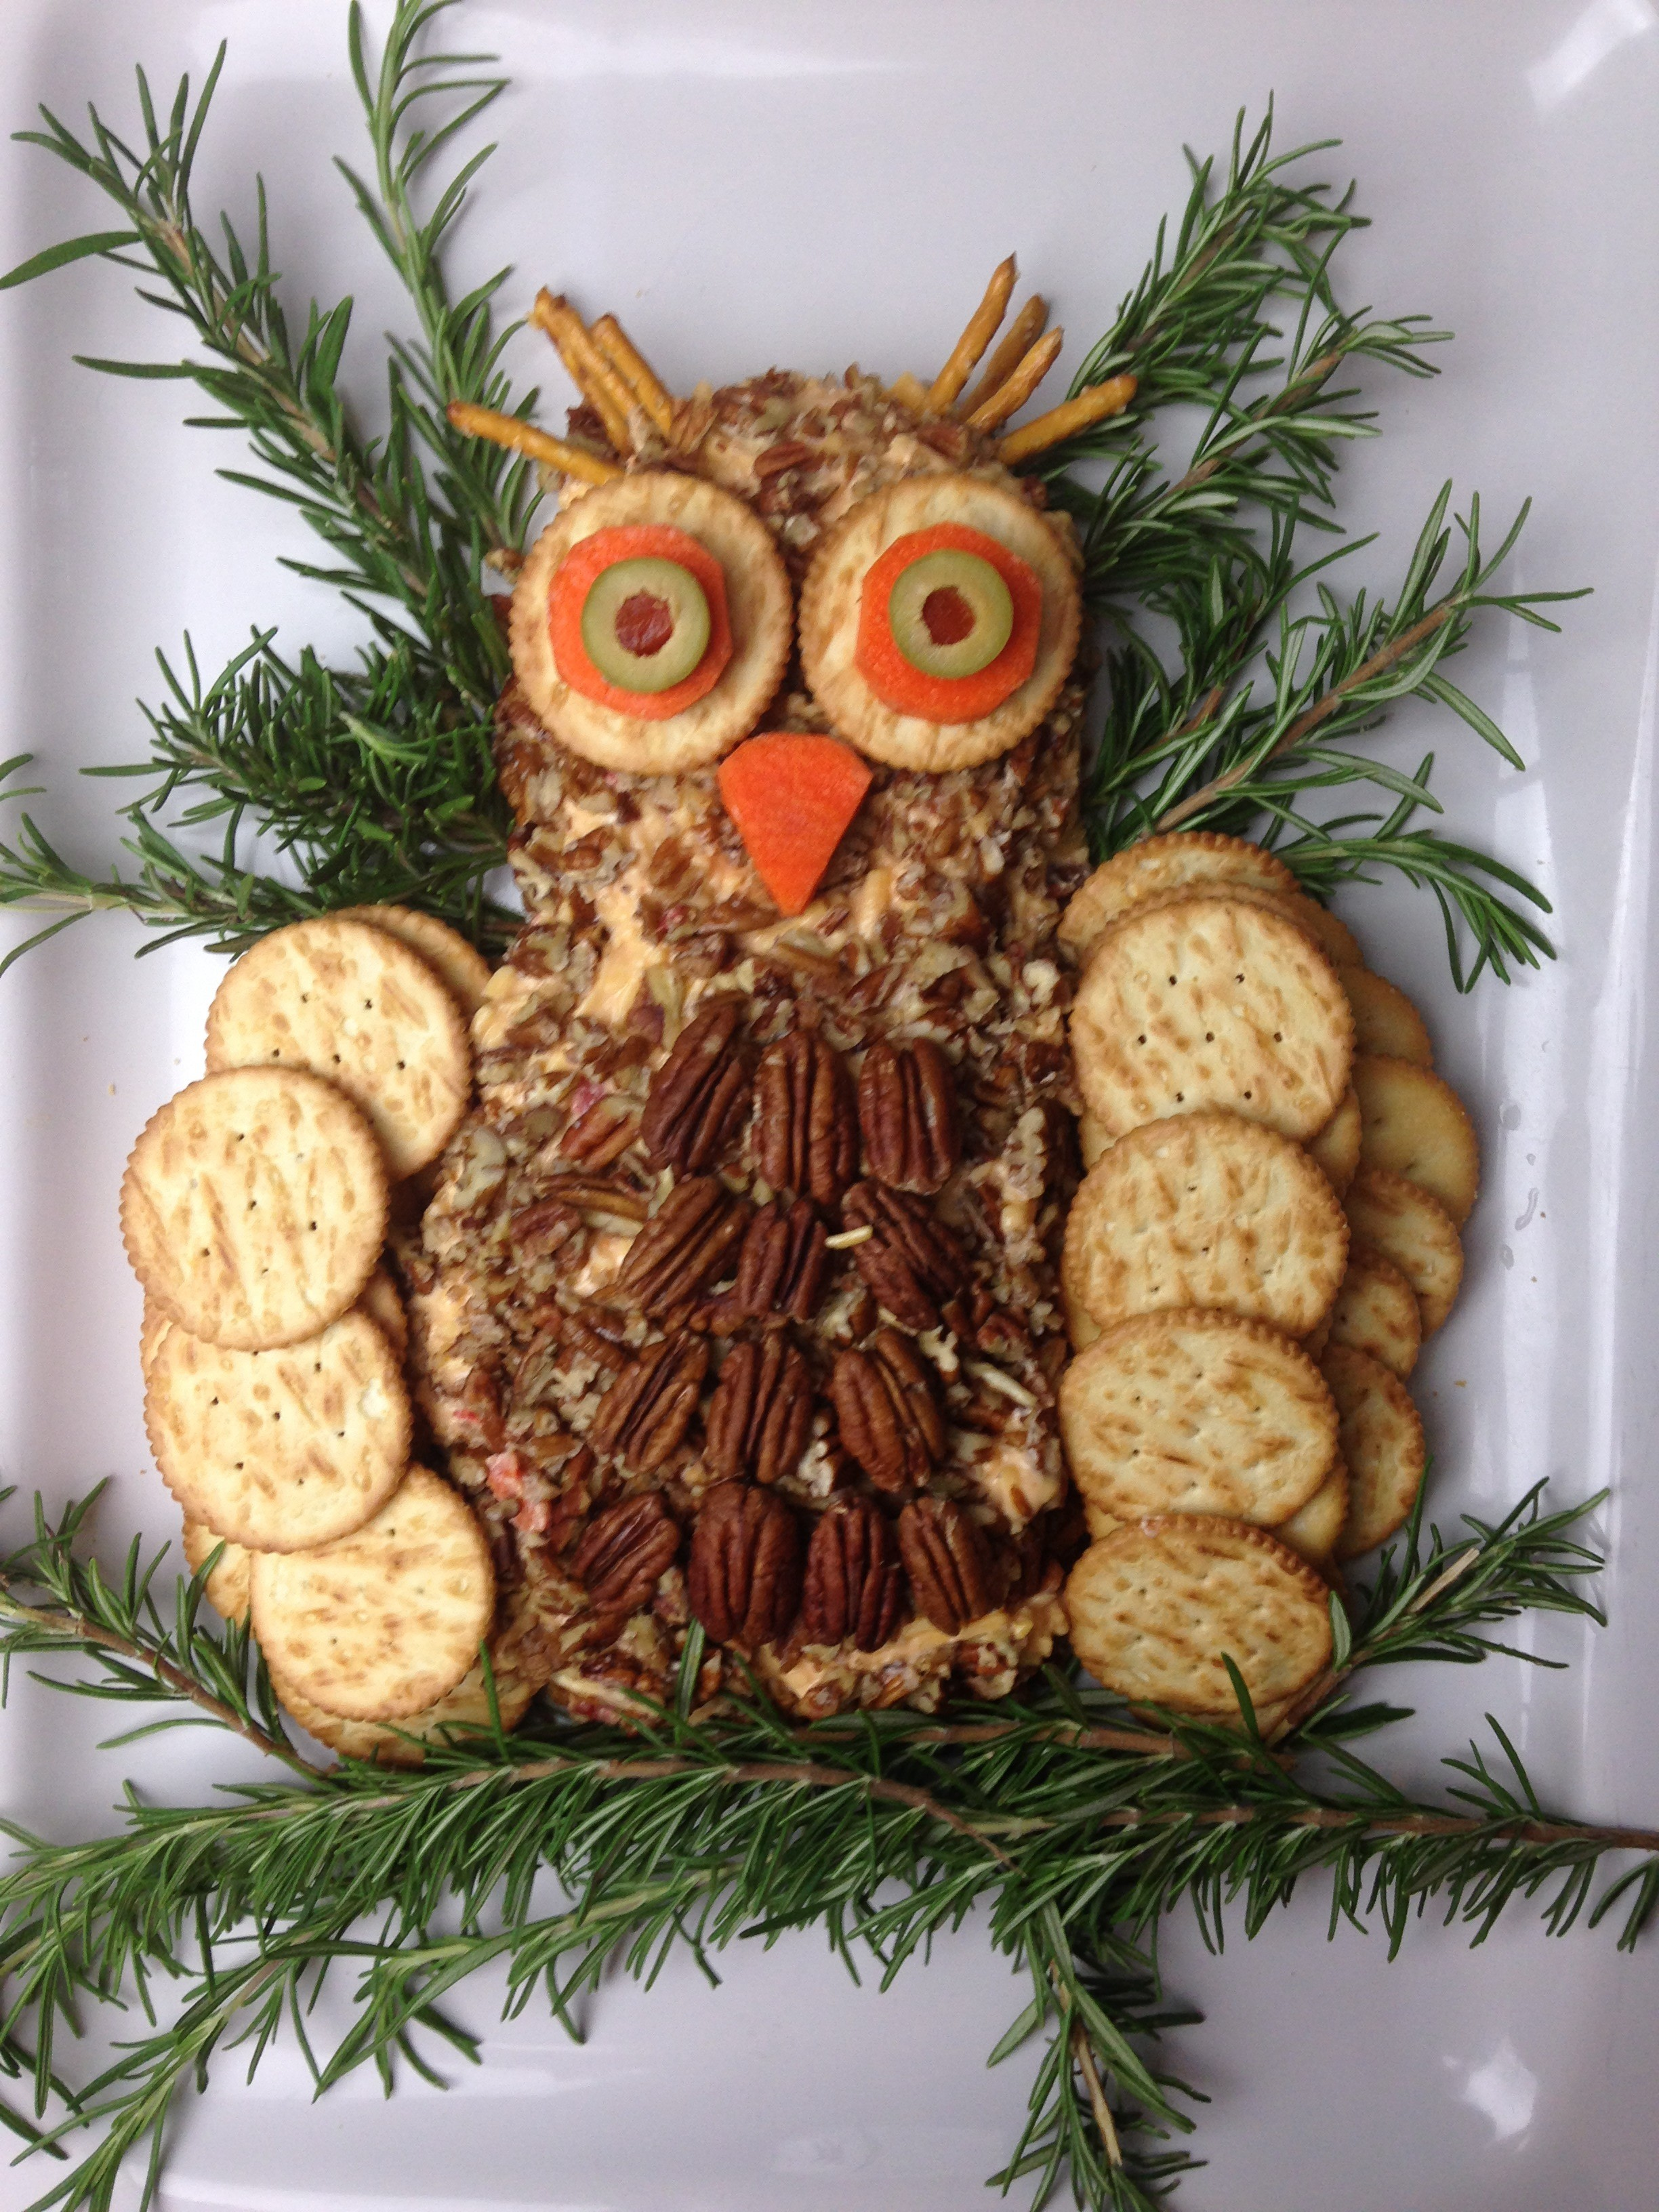 palmetto cheese pimento cheese ball owl